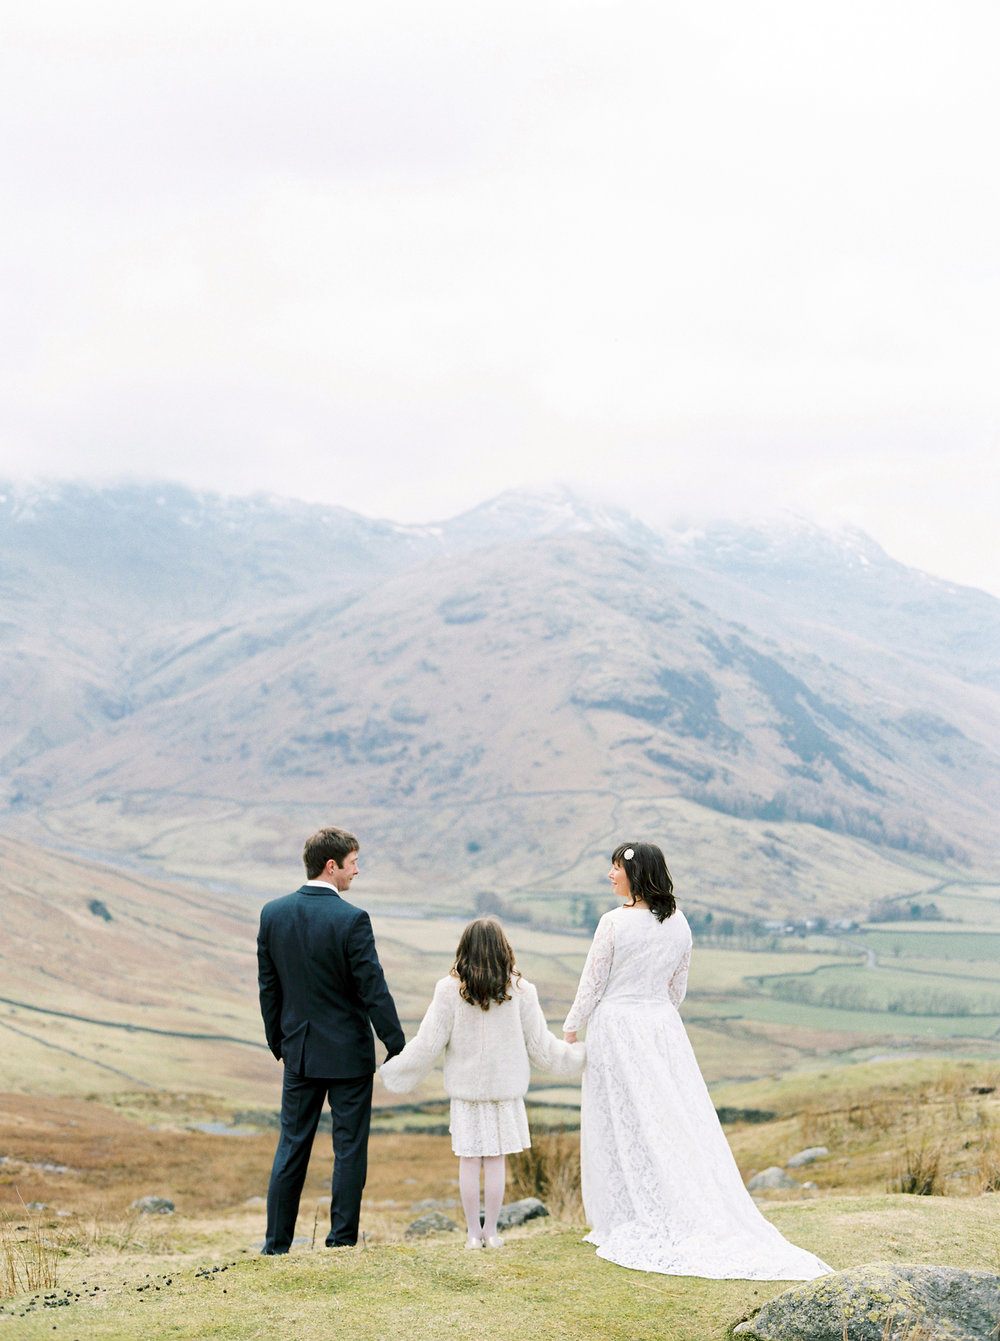 Langdale wedding shoot - Carol and Shane eloped to Iceland and decided to have some photos taken when they returned. The Langdale mountains were the perfect backdrop and matched in with the Icelandic vibe very well. It was a special shoot as their daughter Izzy- Rose was there and Carol was pregnant with their second daughter Martha-Rose, so she was there too.